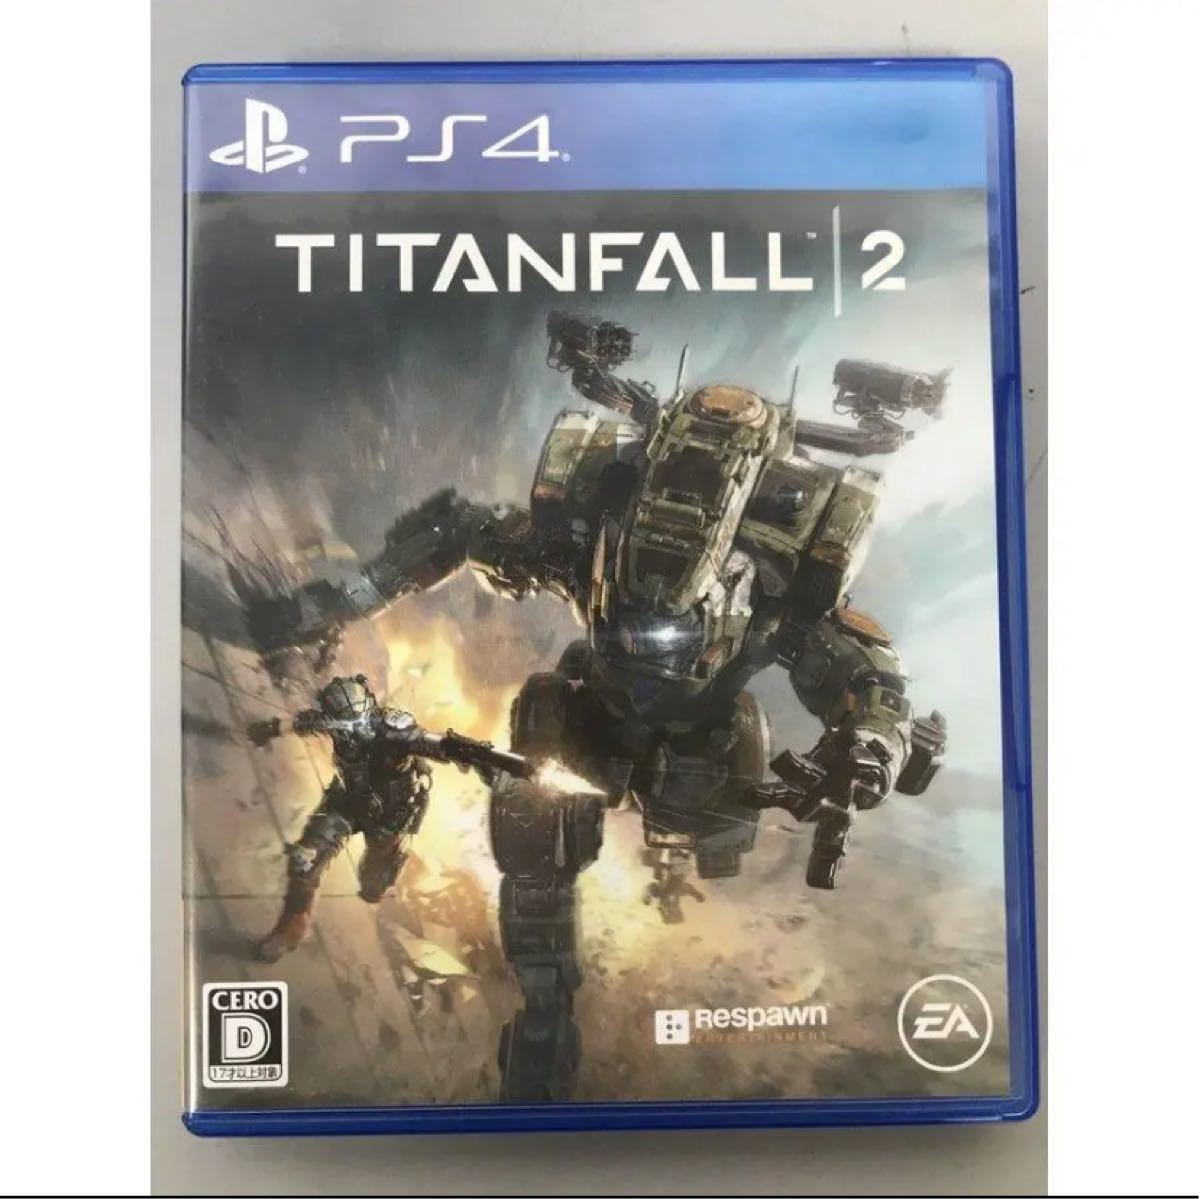 PS4 タイタンフォール 2 中古 タイタンフォール2 TITANFALL2 PS4 PS4ソフト